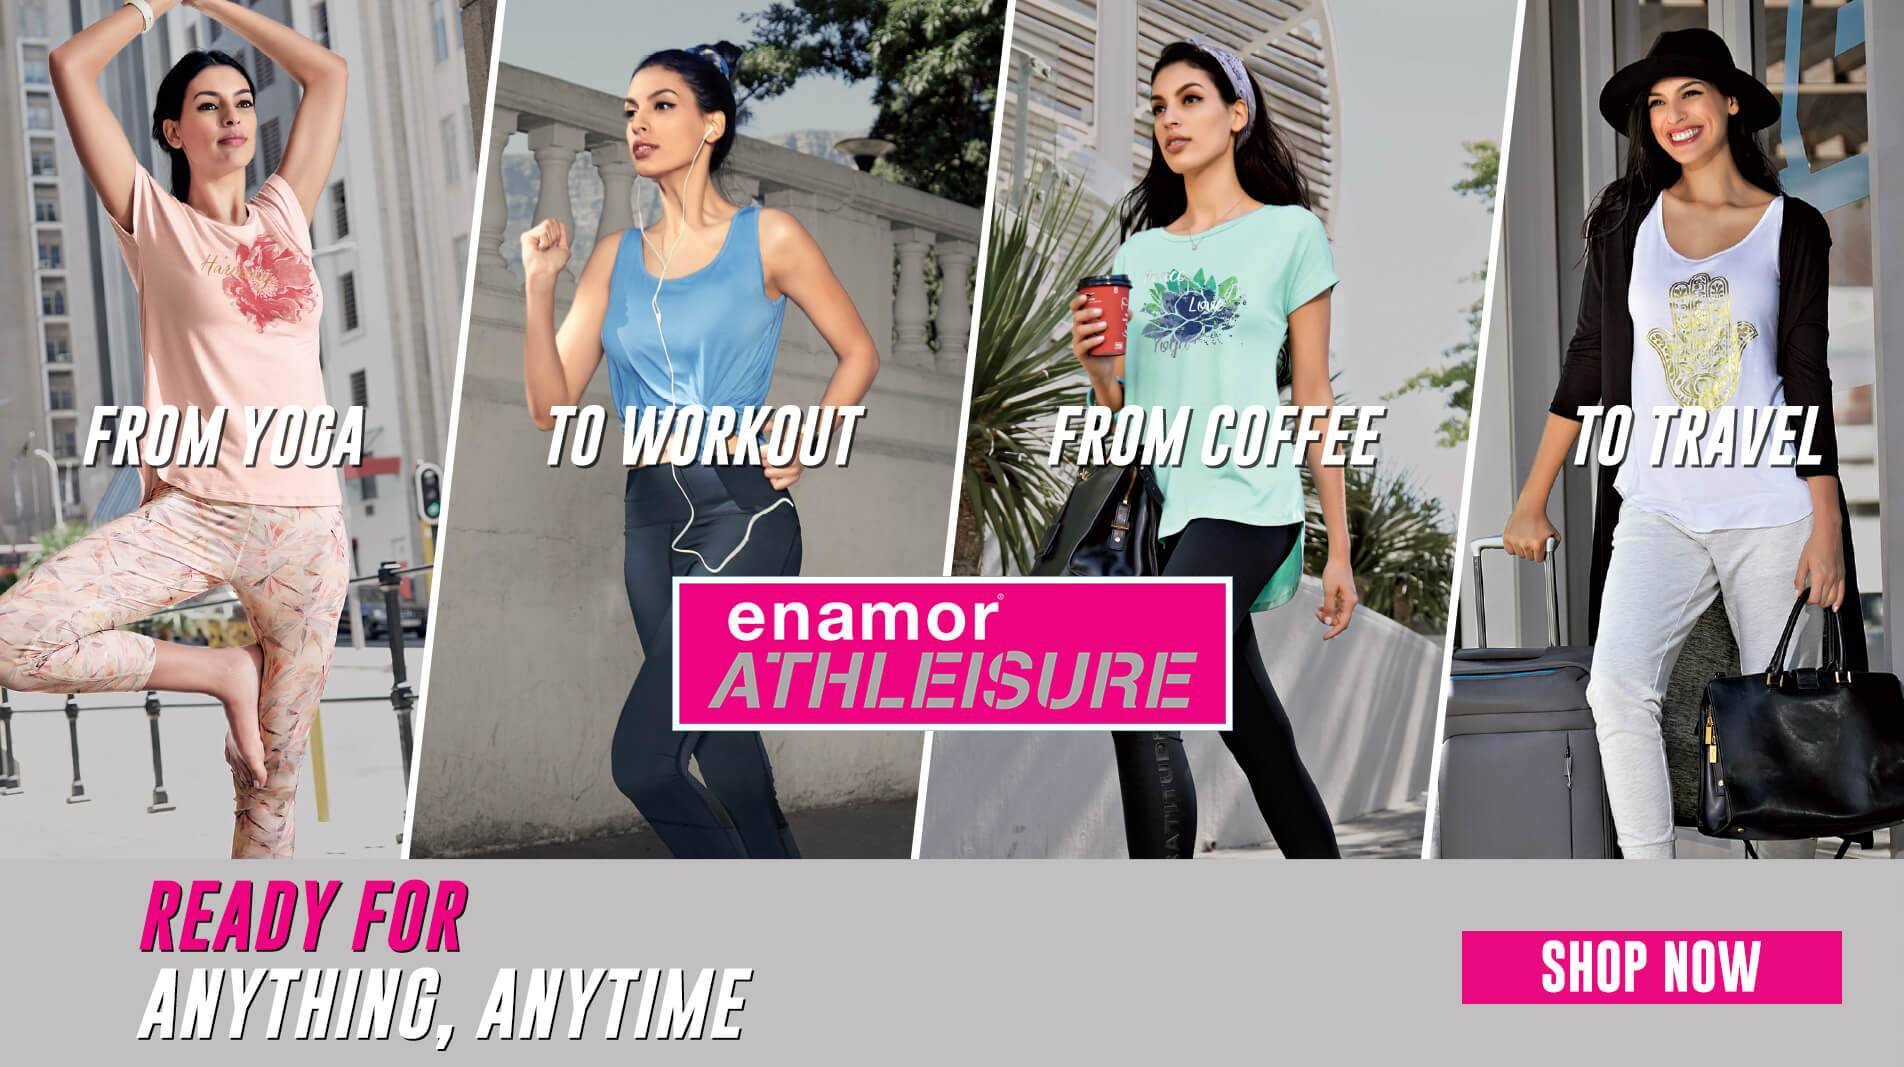 Enamor Athleisure Collection Online - Ready for Anything, Anytime